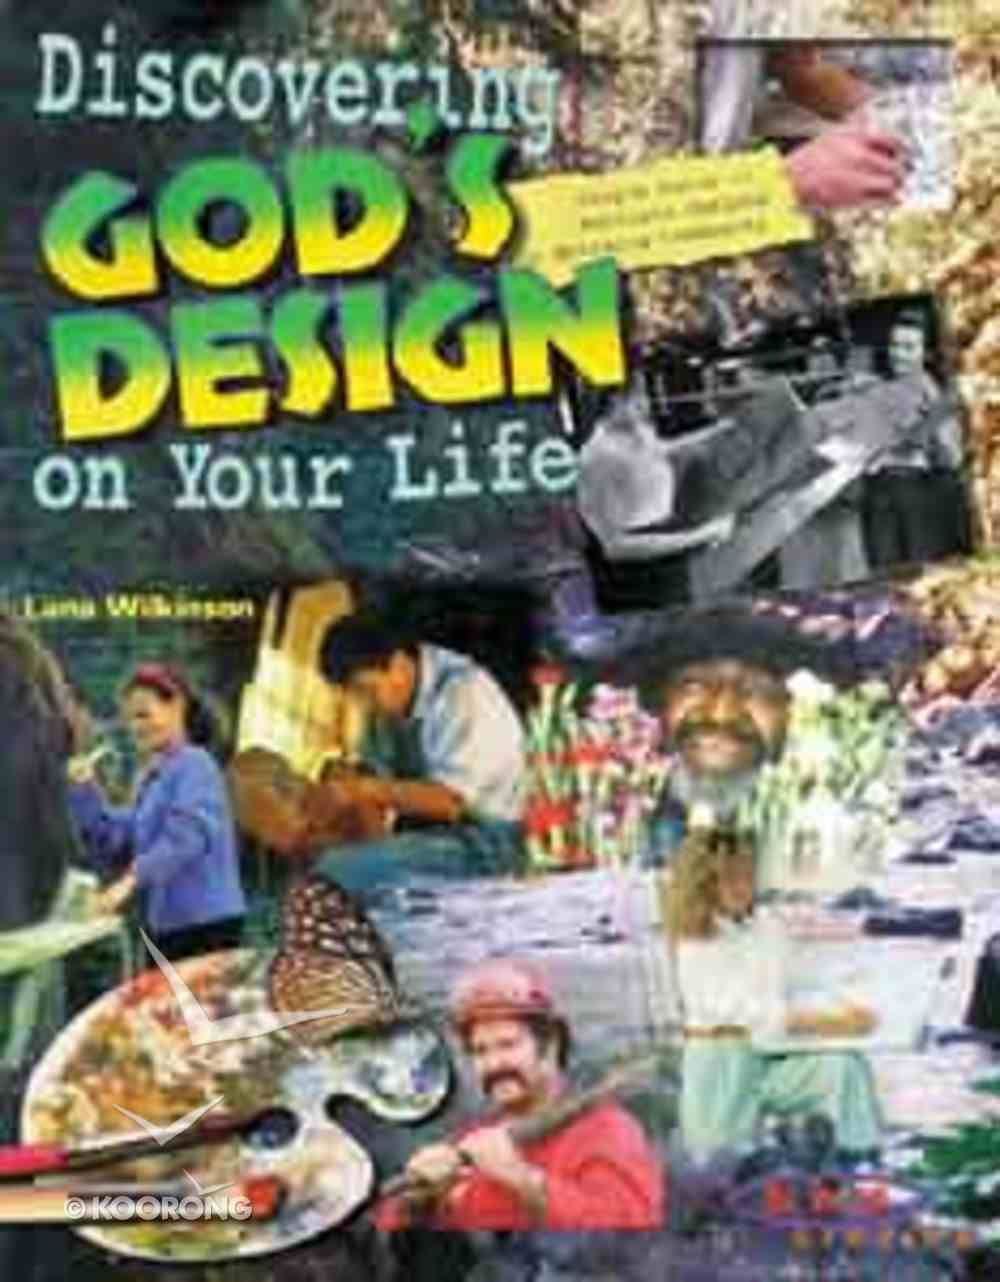 Discovering God's Design For Your Life (Single Adult Ministry Study Series) Paperback